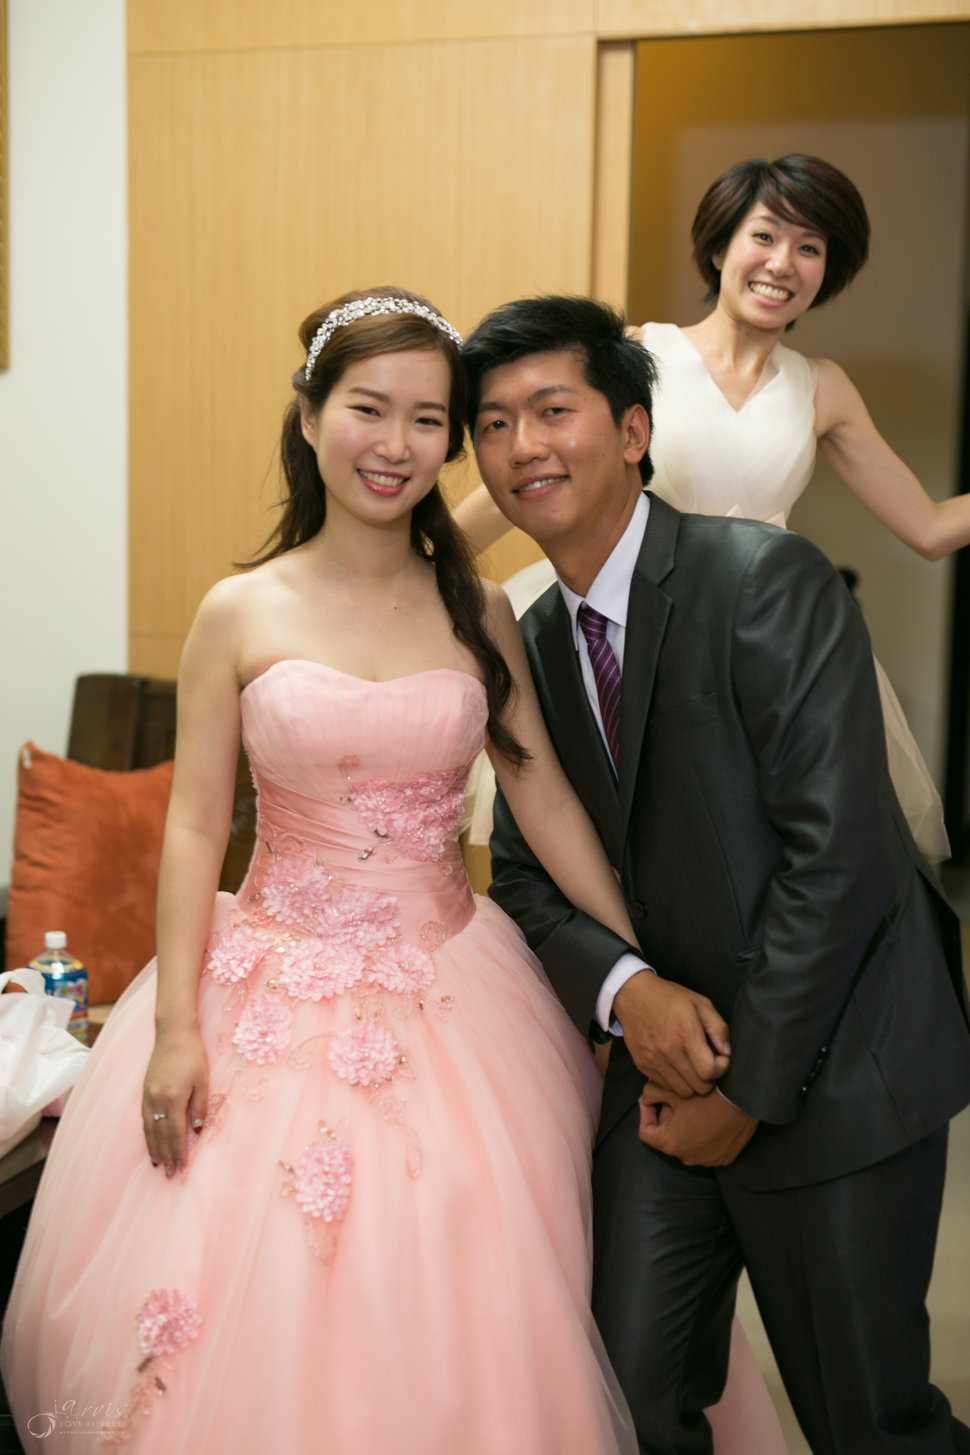 2D7A9926 - Jarvis Ding - 結婚吧